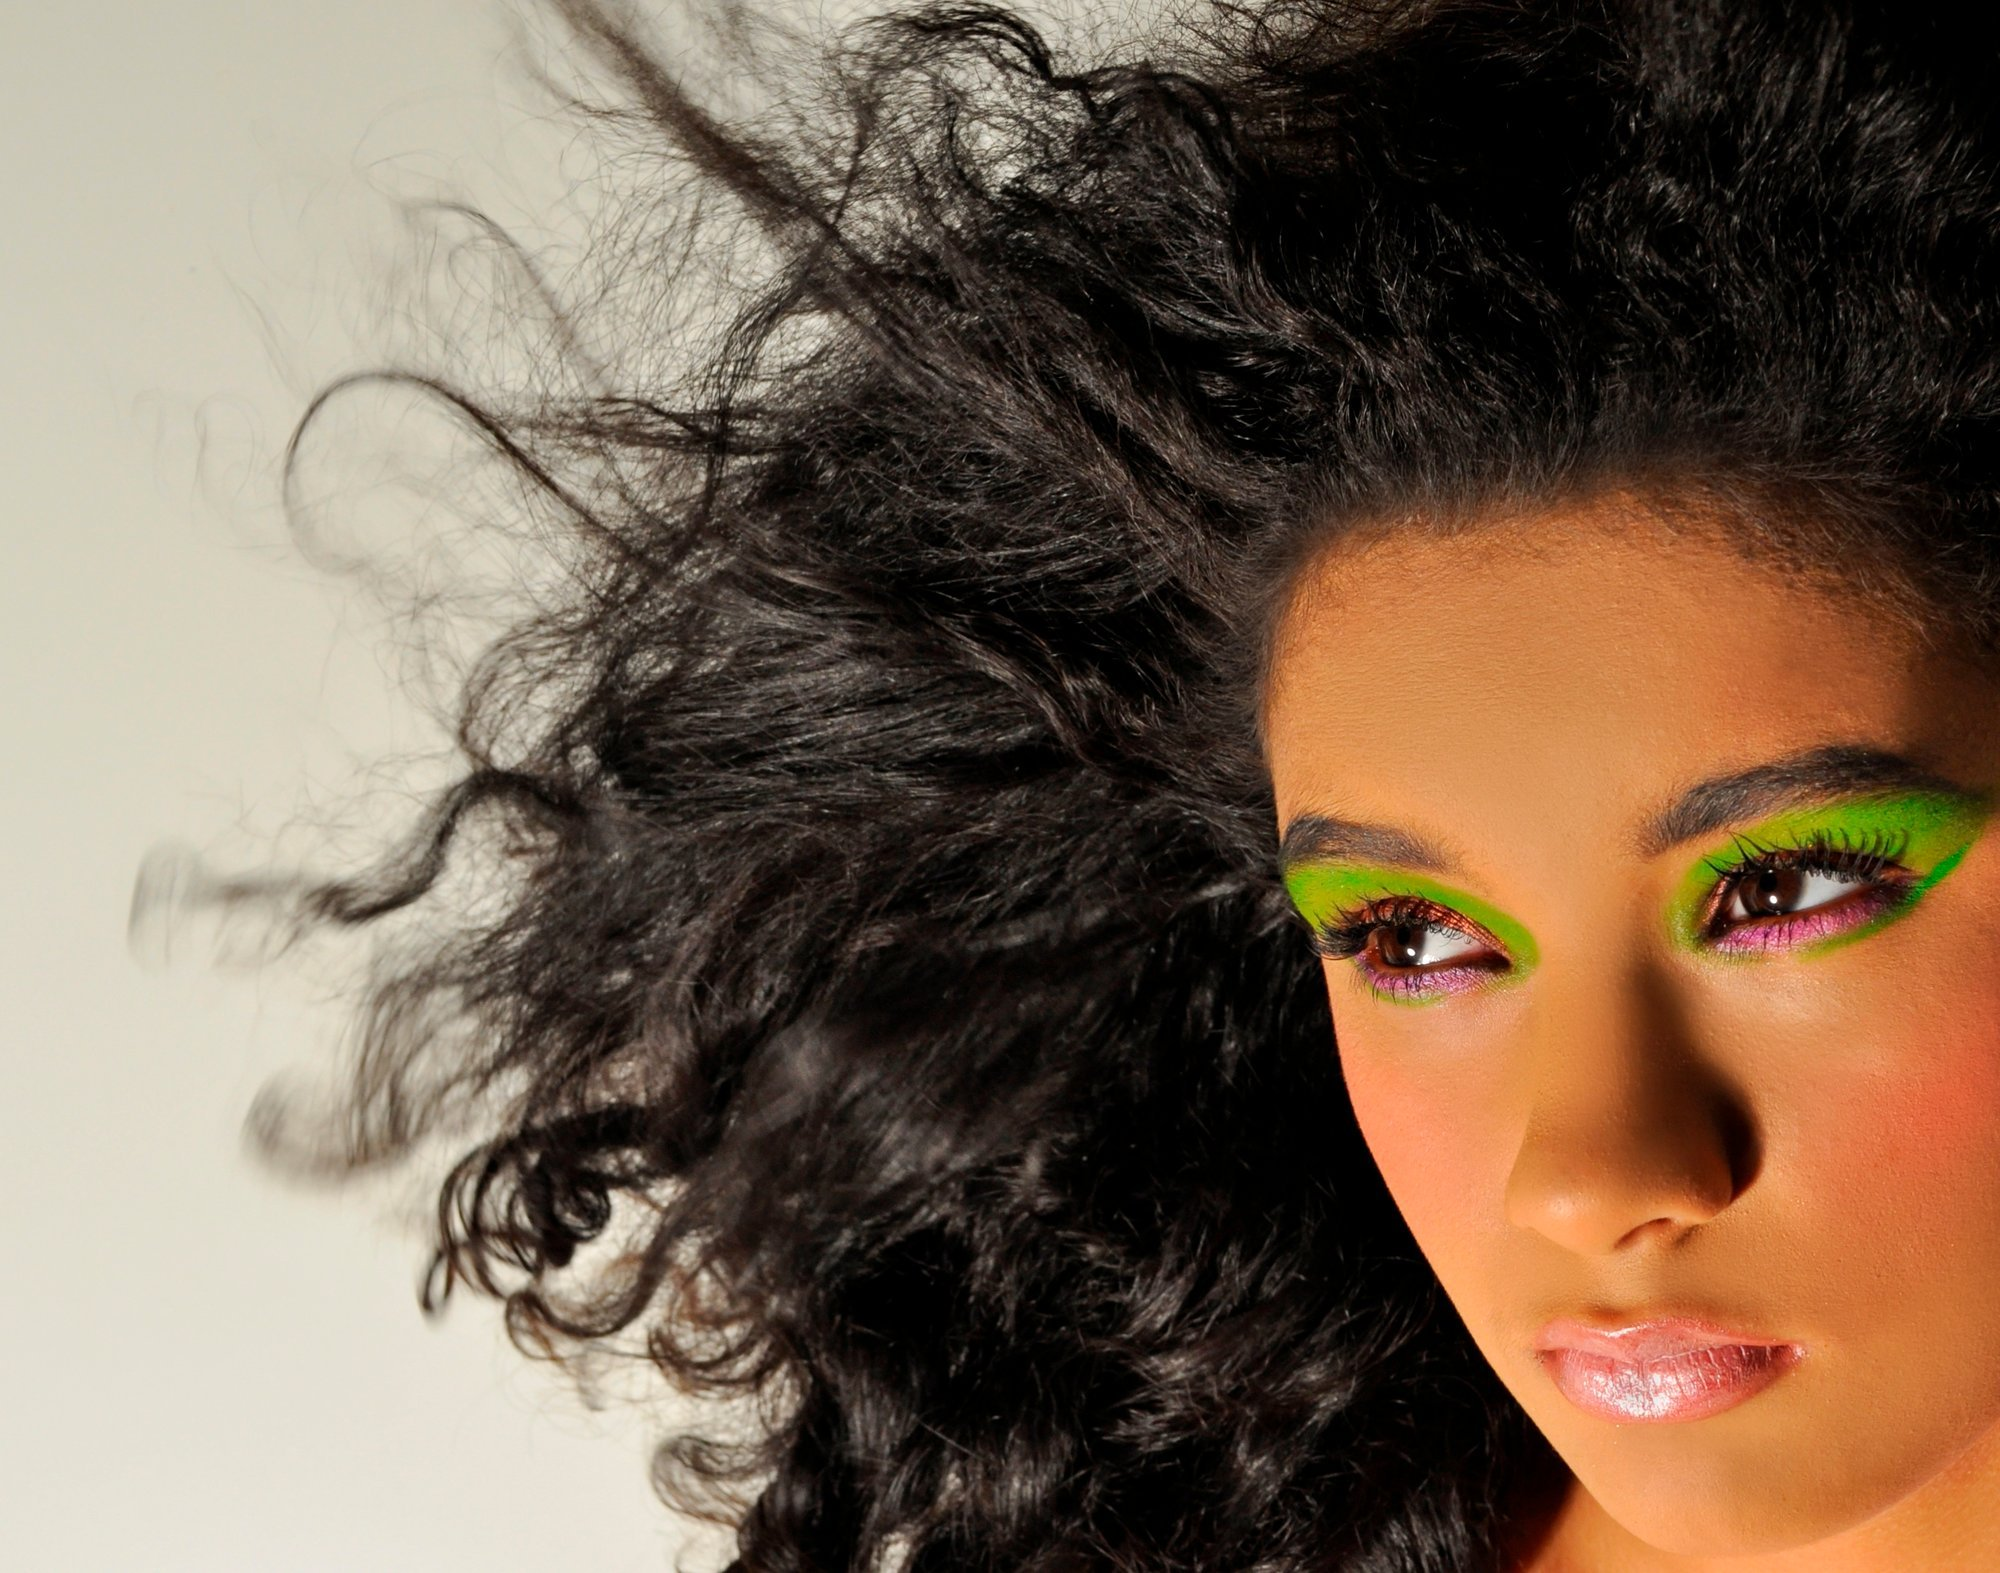 My discovery CHEYENNE JENNINGS- INTL'  MODEL appearing in editorials, campaigns and runway shows.